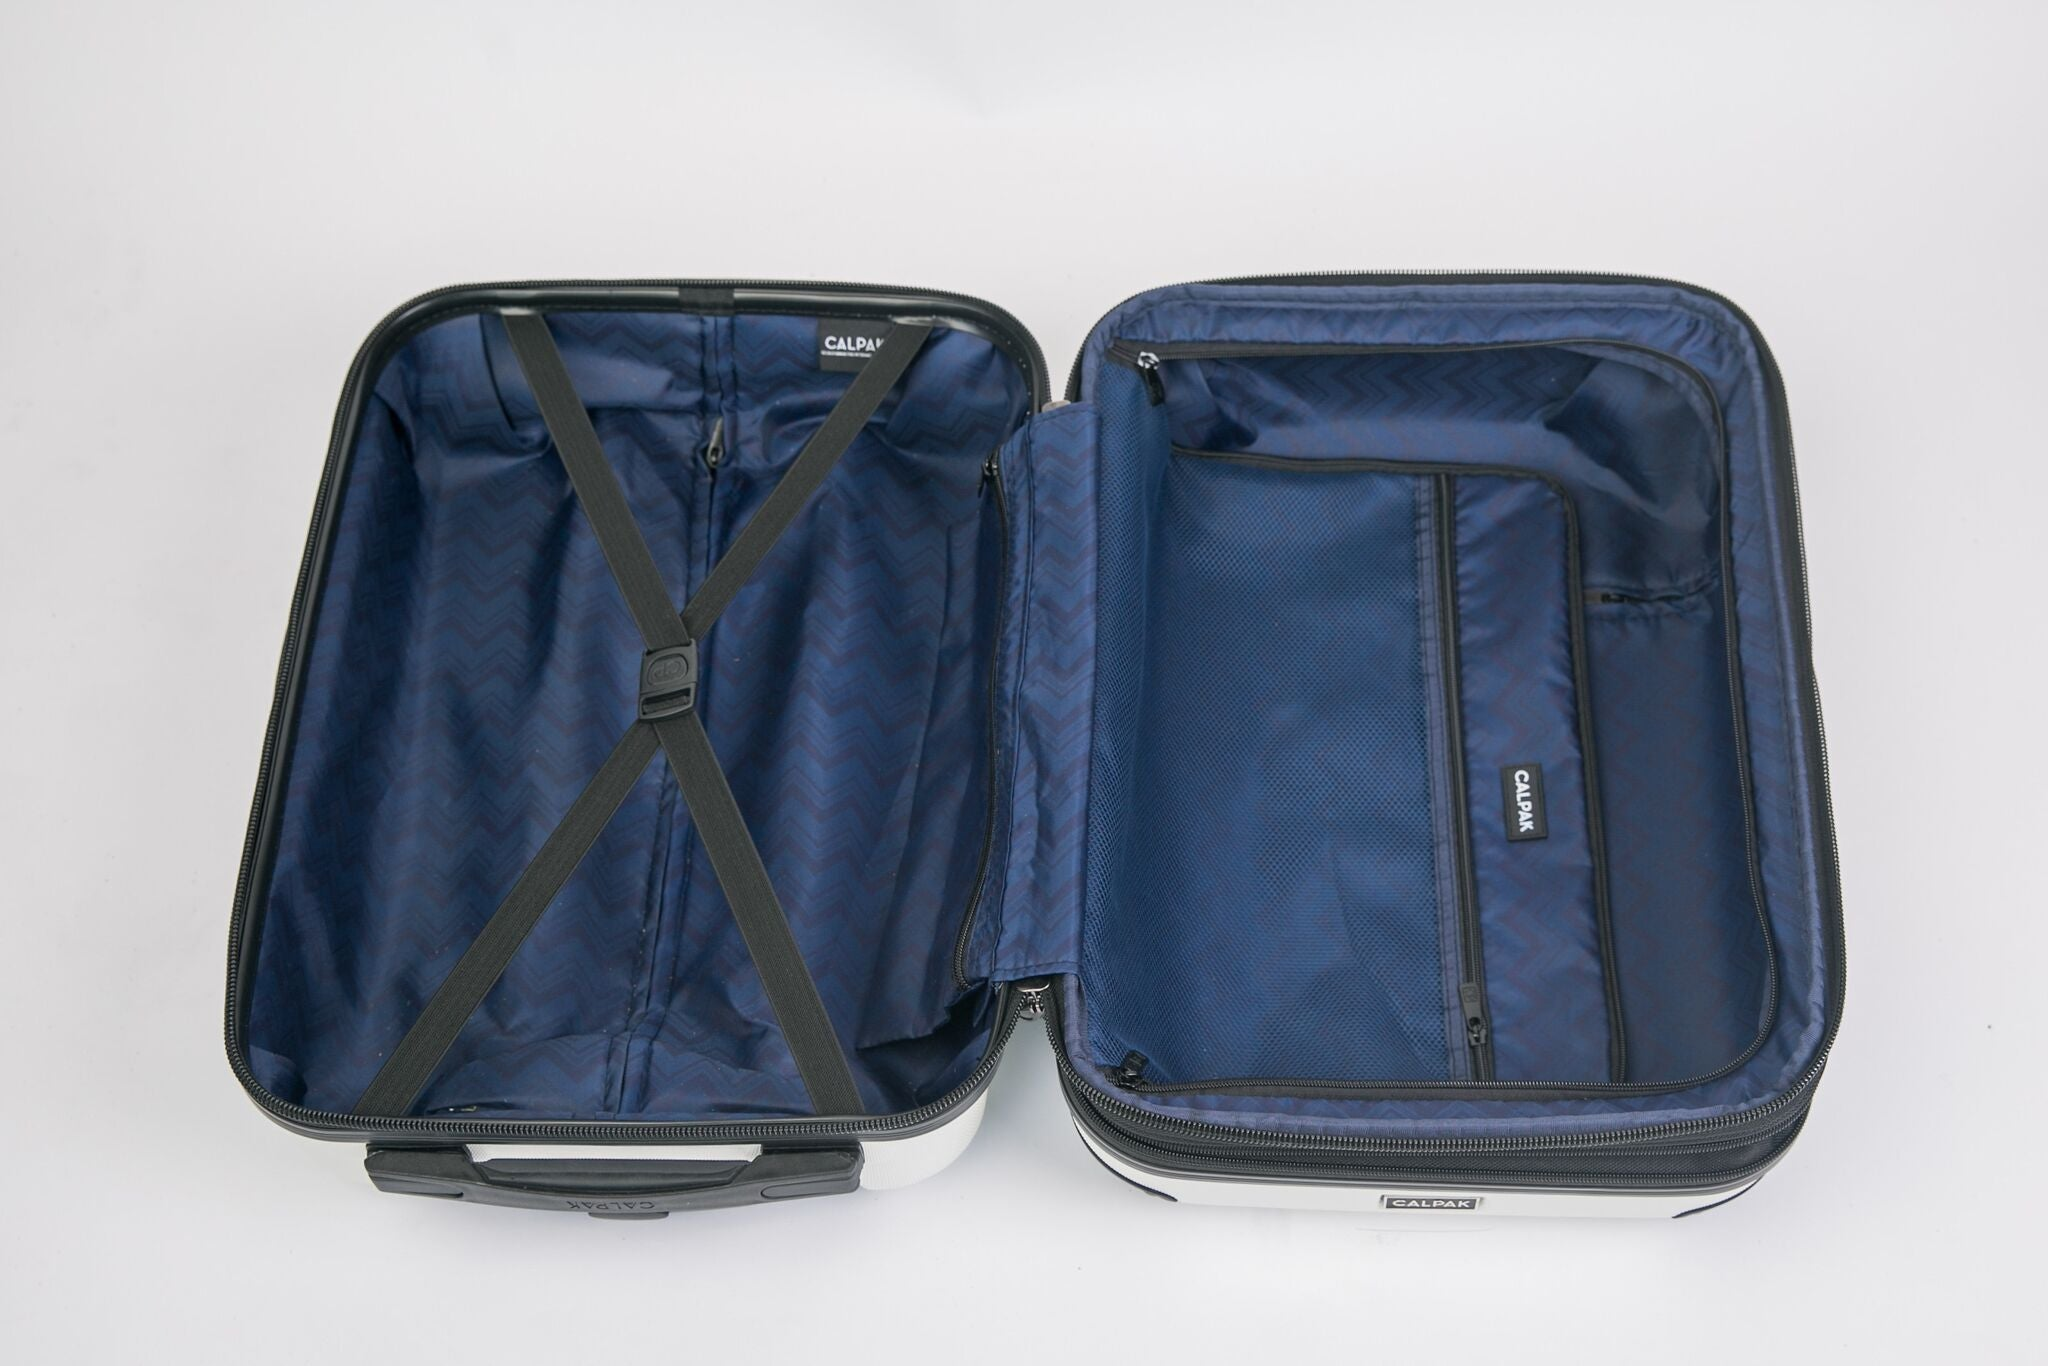 4c8974f35caa9 The Pros and Cons of Using a Travel Luggage Organizer – EzPacking, Inc